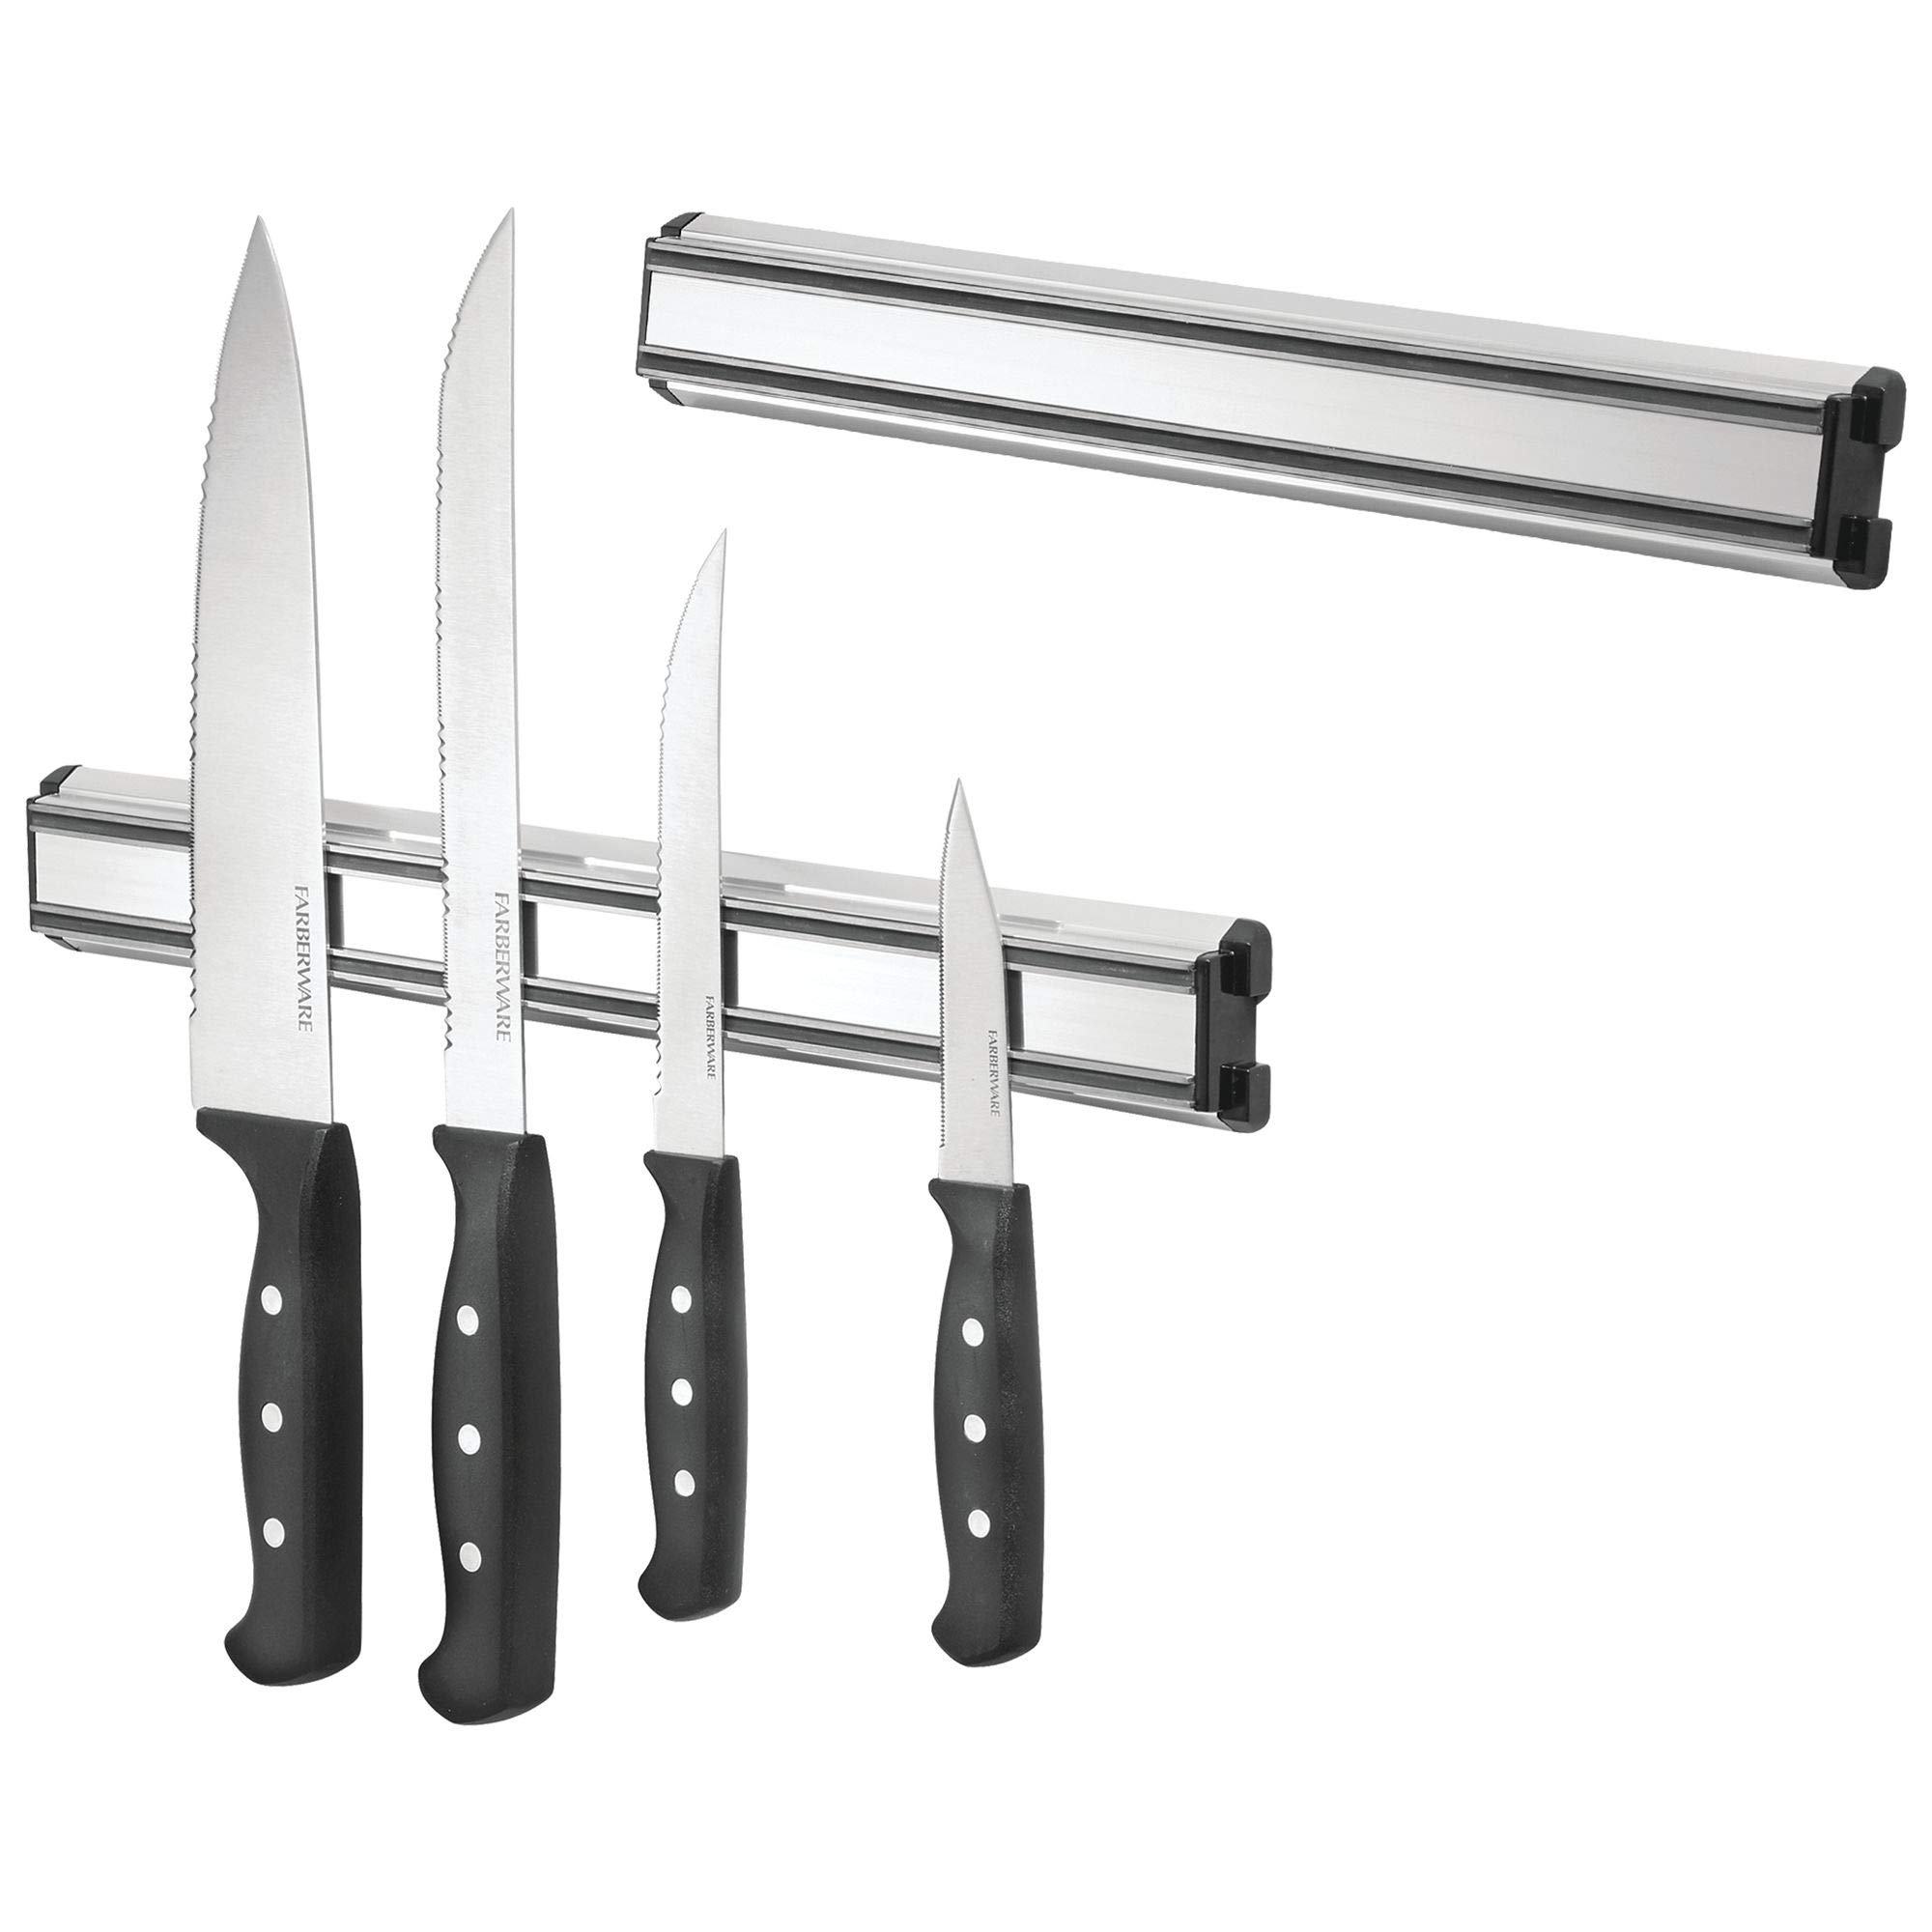 Details About MDesign Kitchen Wall Mount Magnetic Knife Holder Strip For  Knives, Utensils